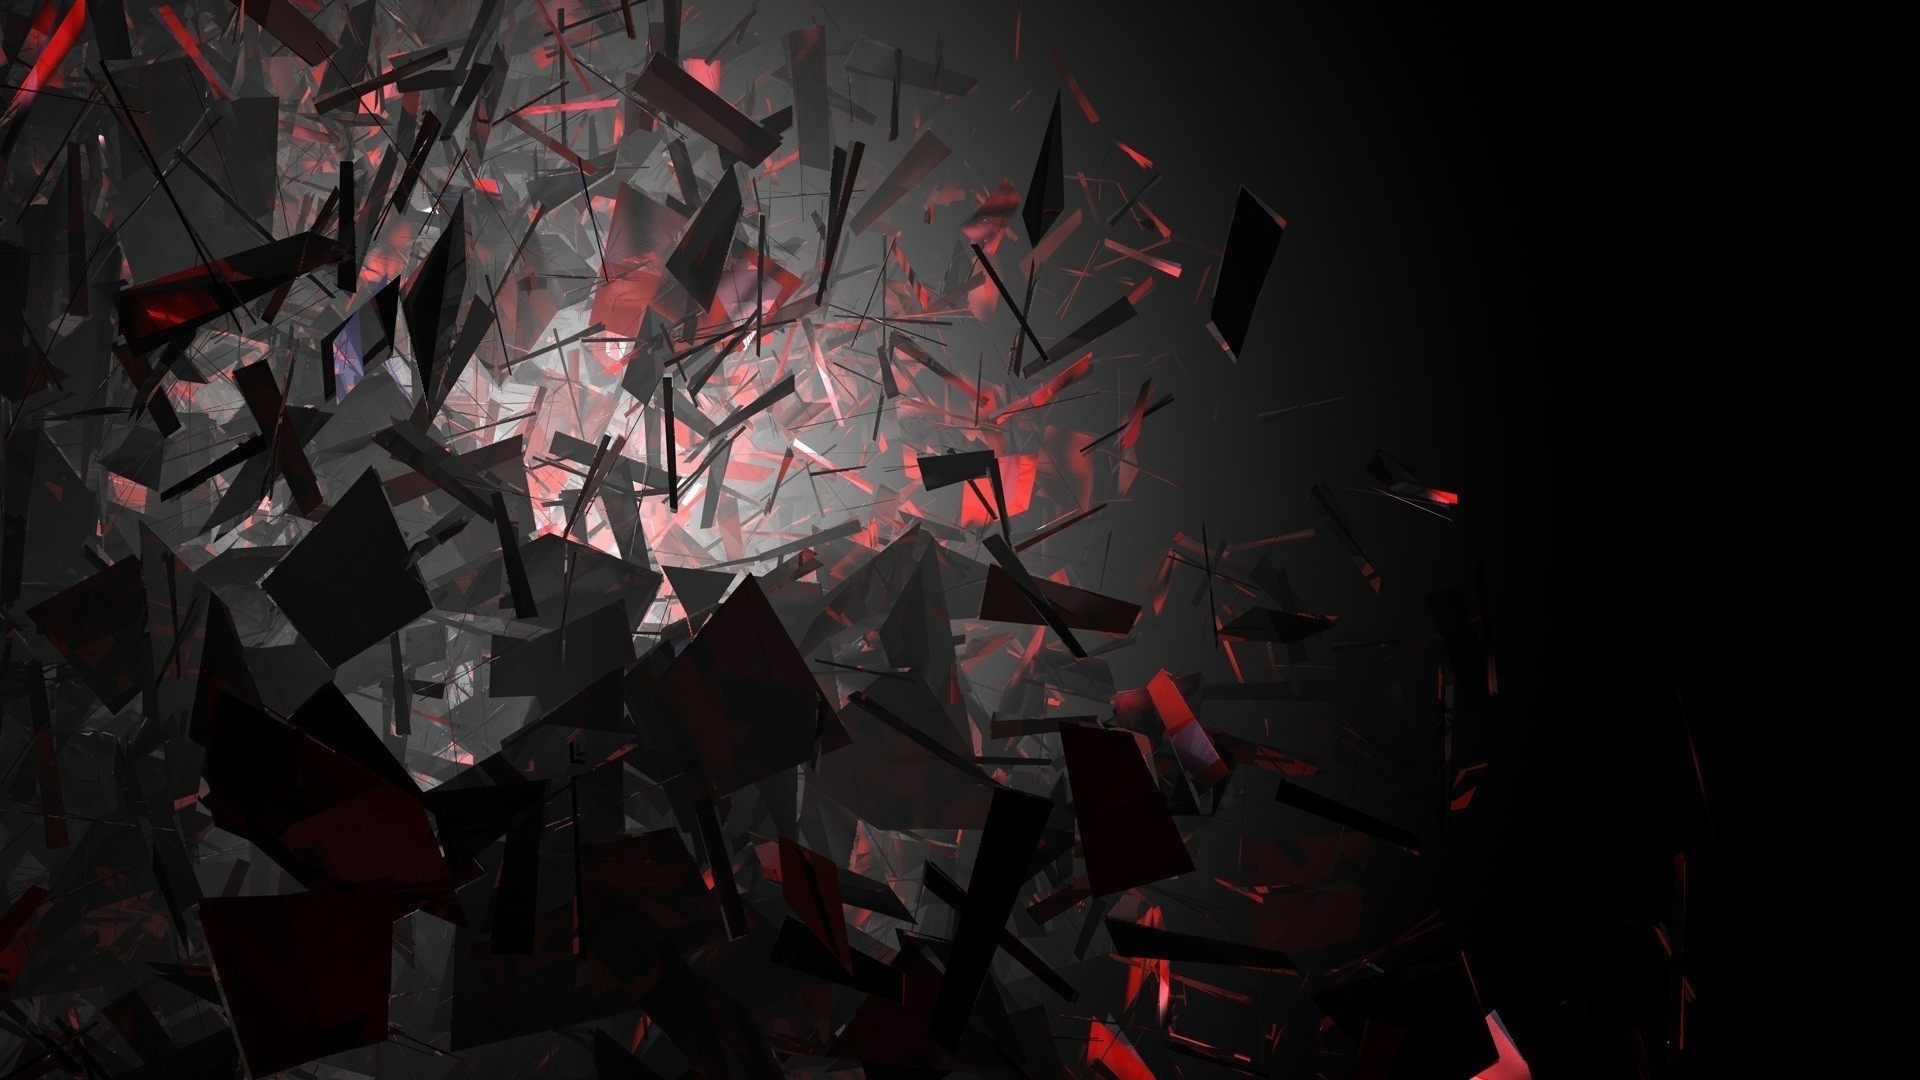 dark abstract backgrounds (69+ images)